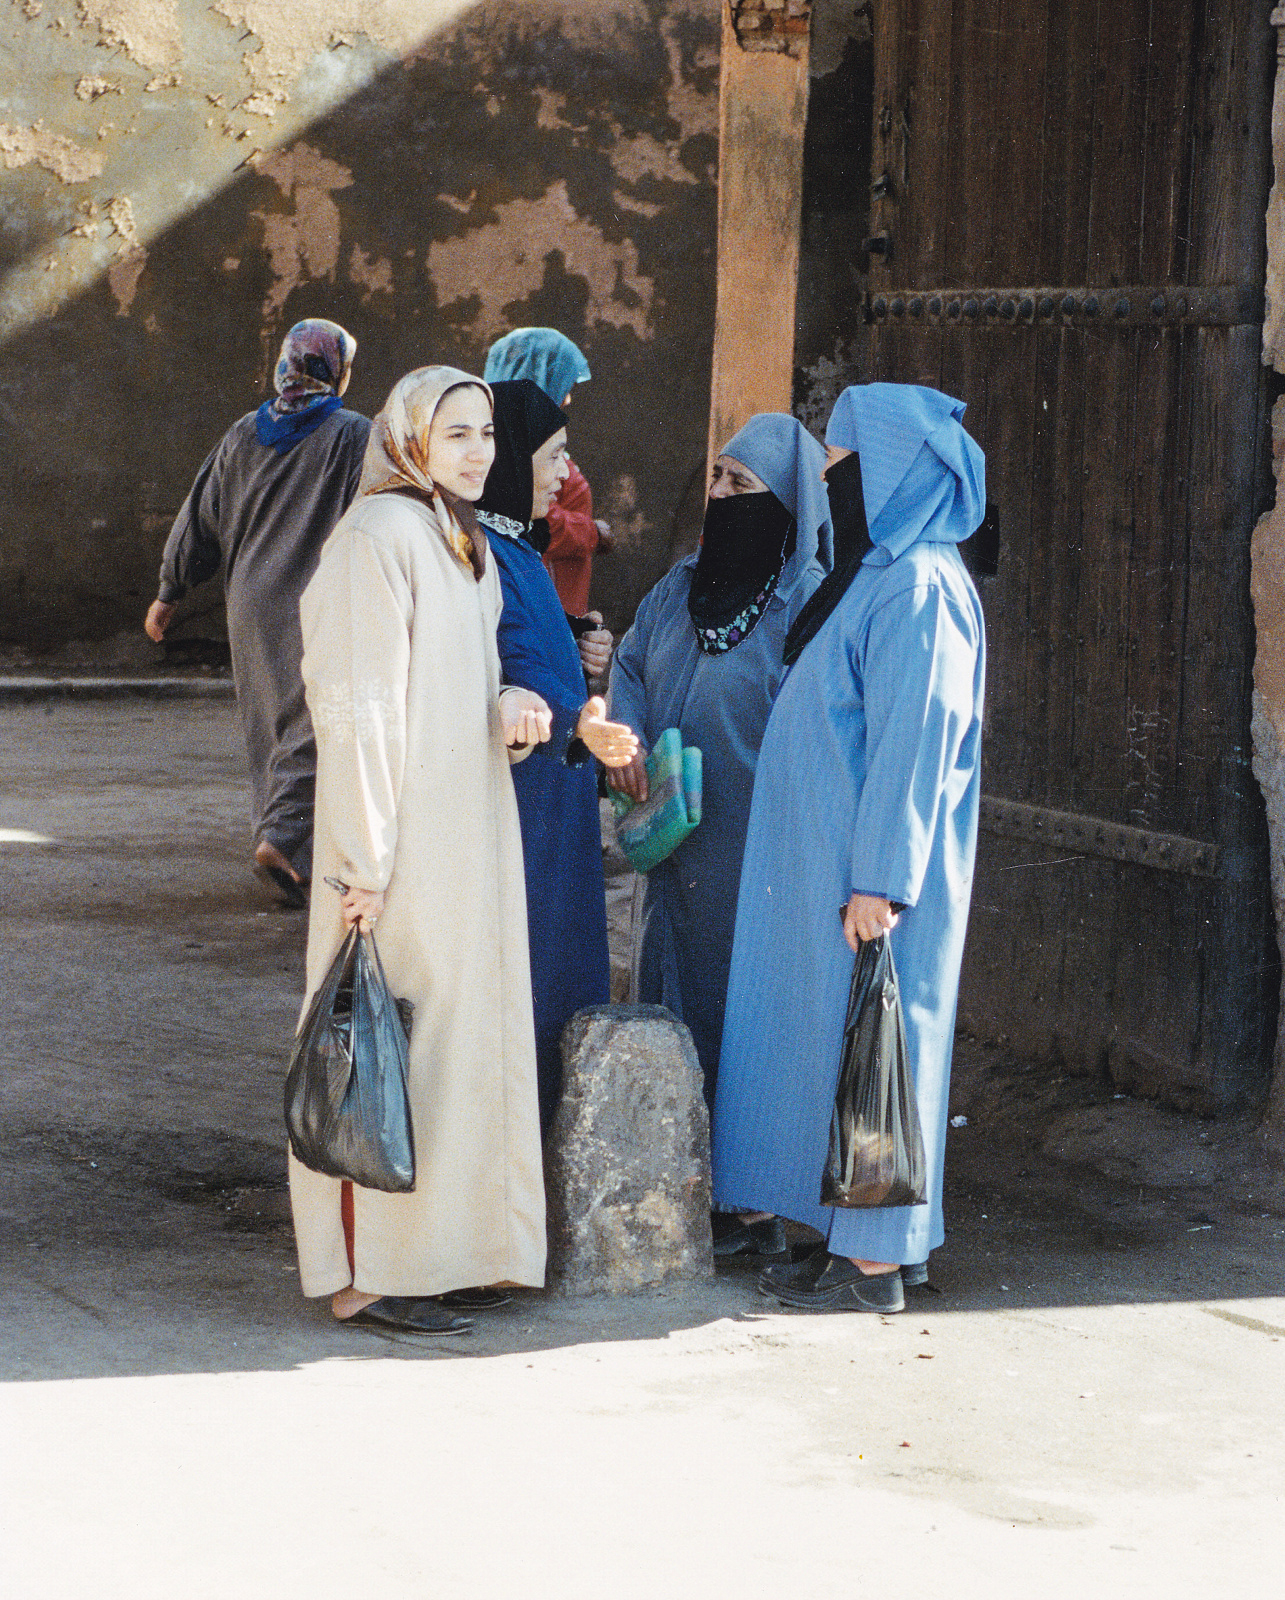 In_Morocco_have_lot_of_women_head_scarves_and_veils